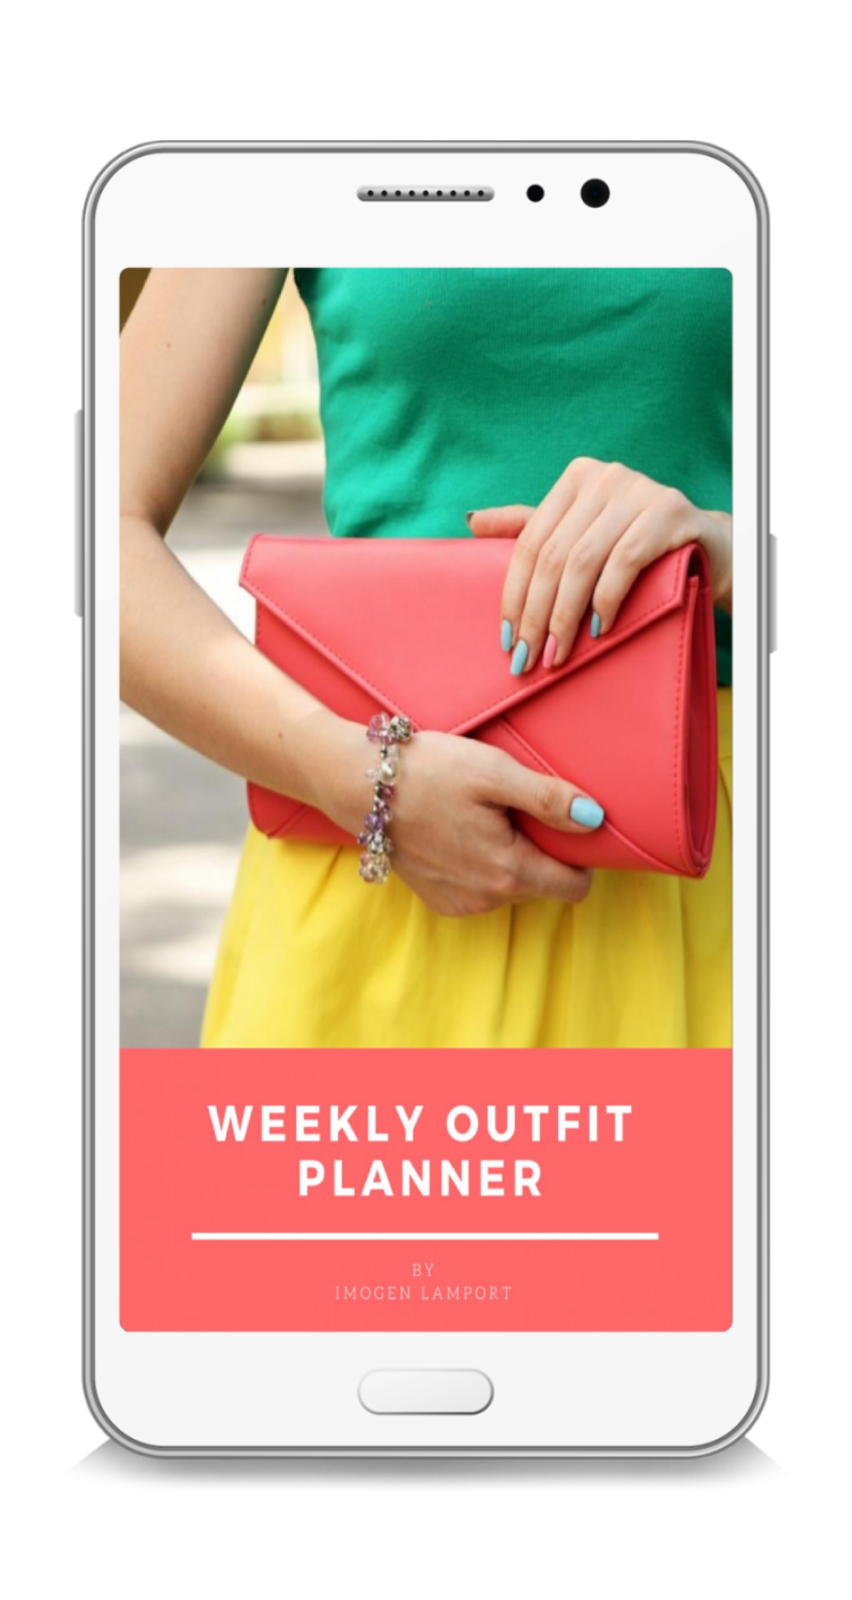 Weekly Outfit Planner Download